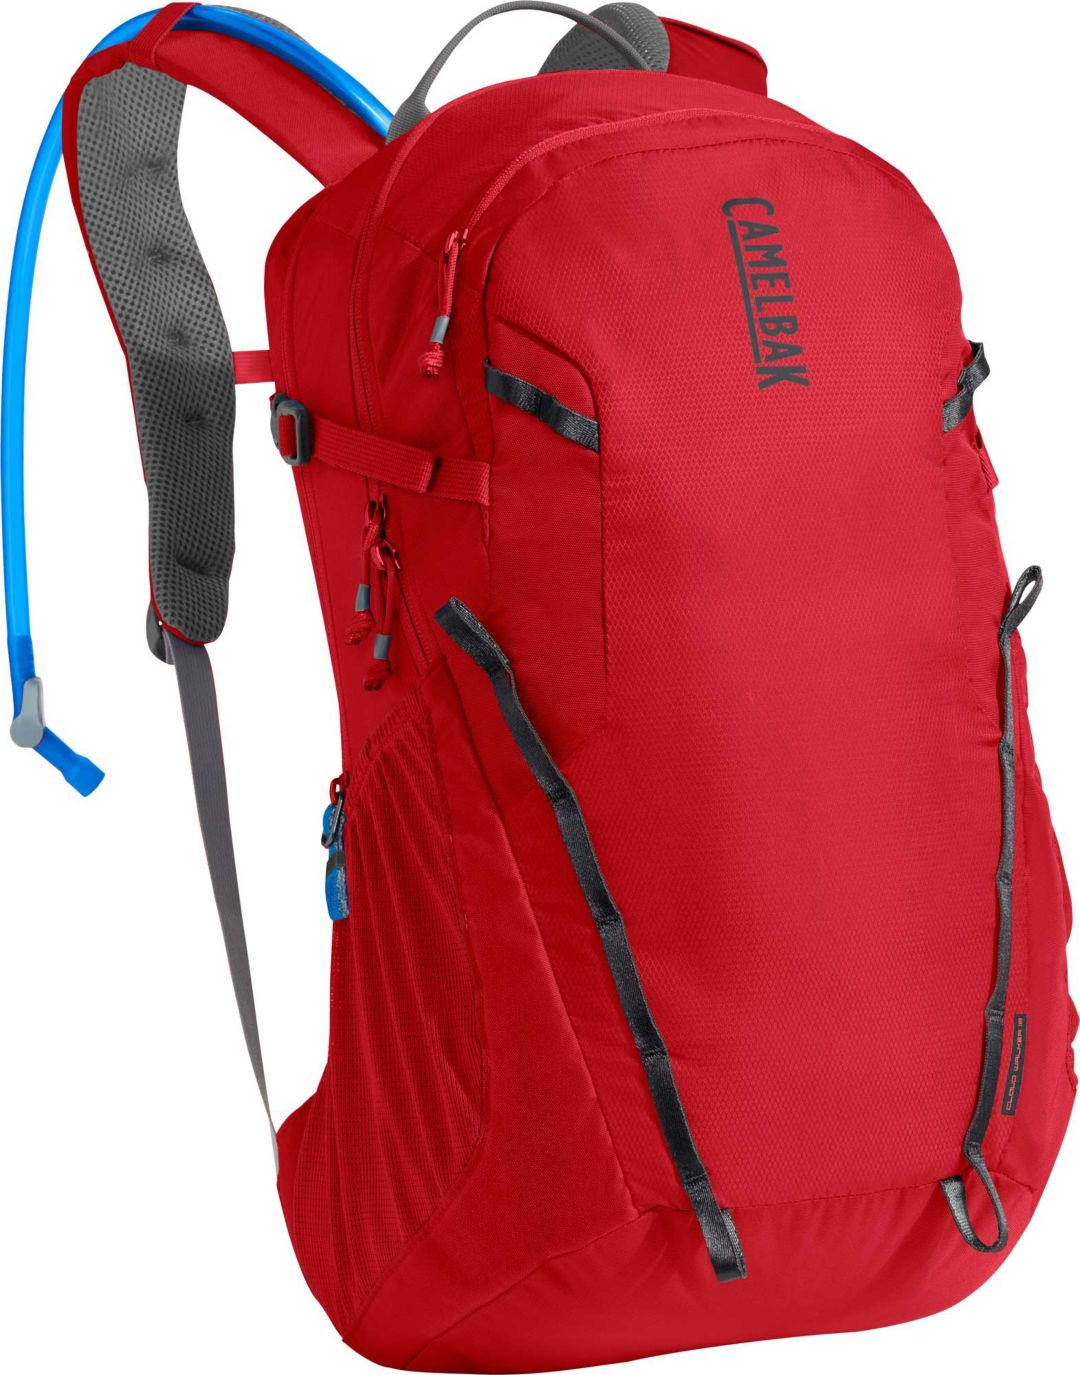 dbb19ac91 CamelBak Cloud Walker 18L Hydration Pack